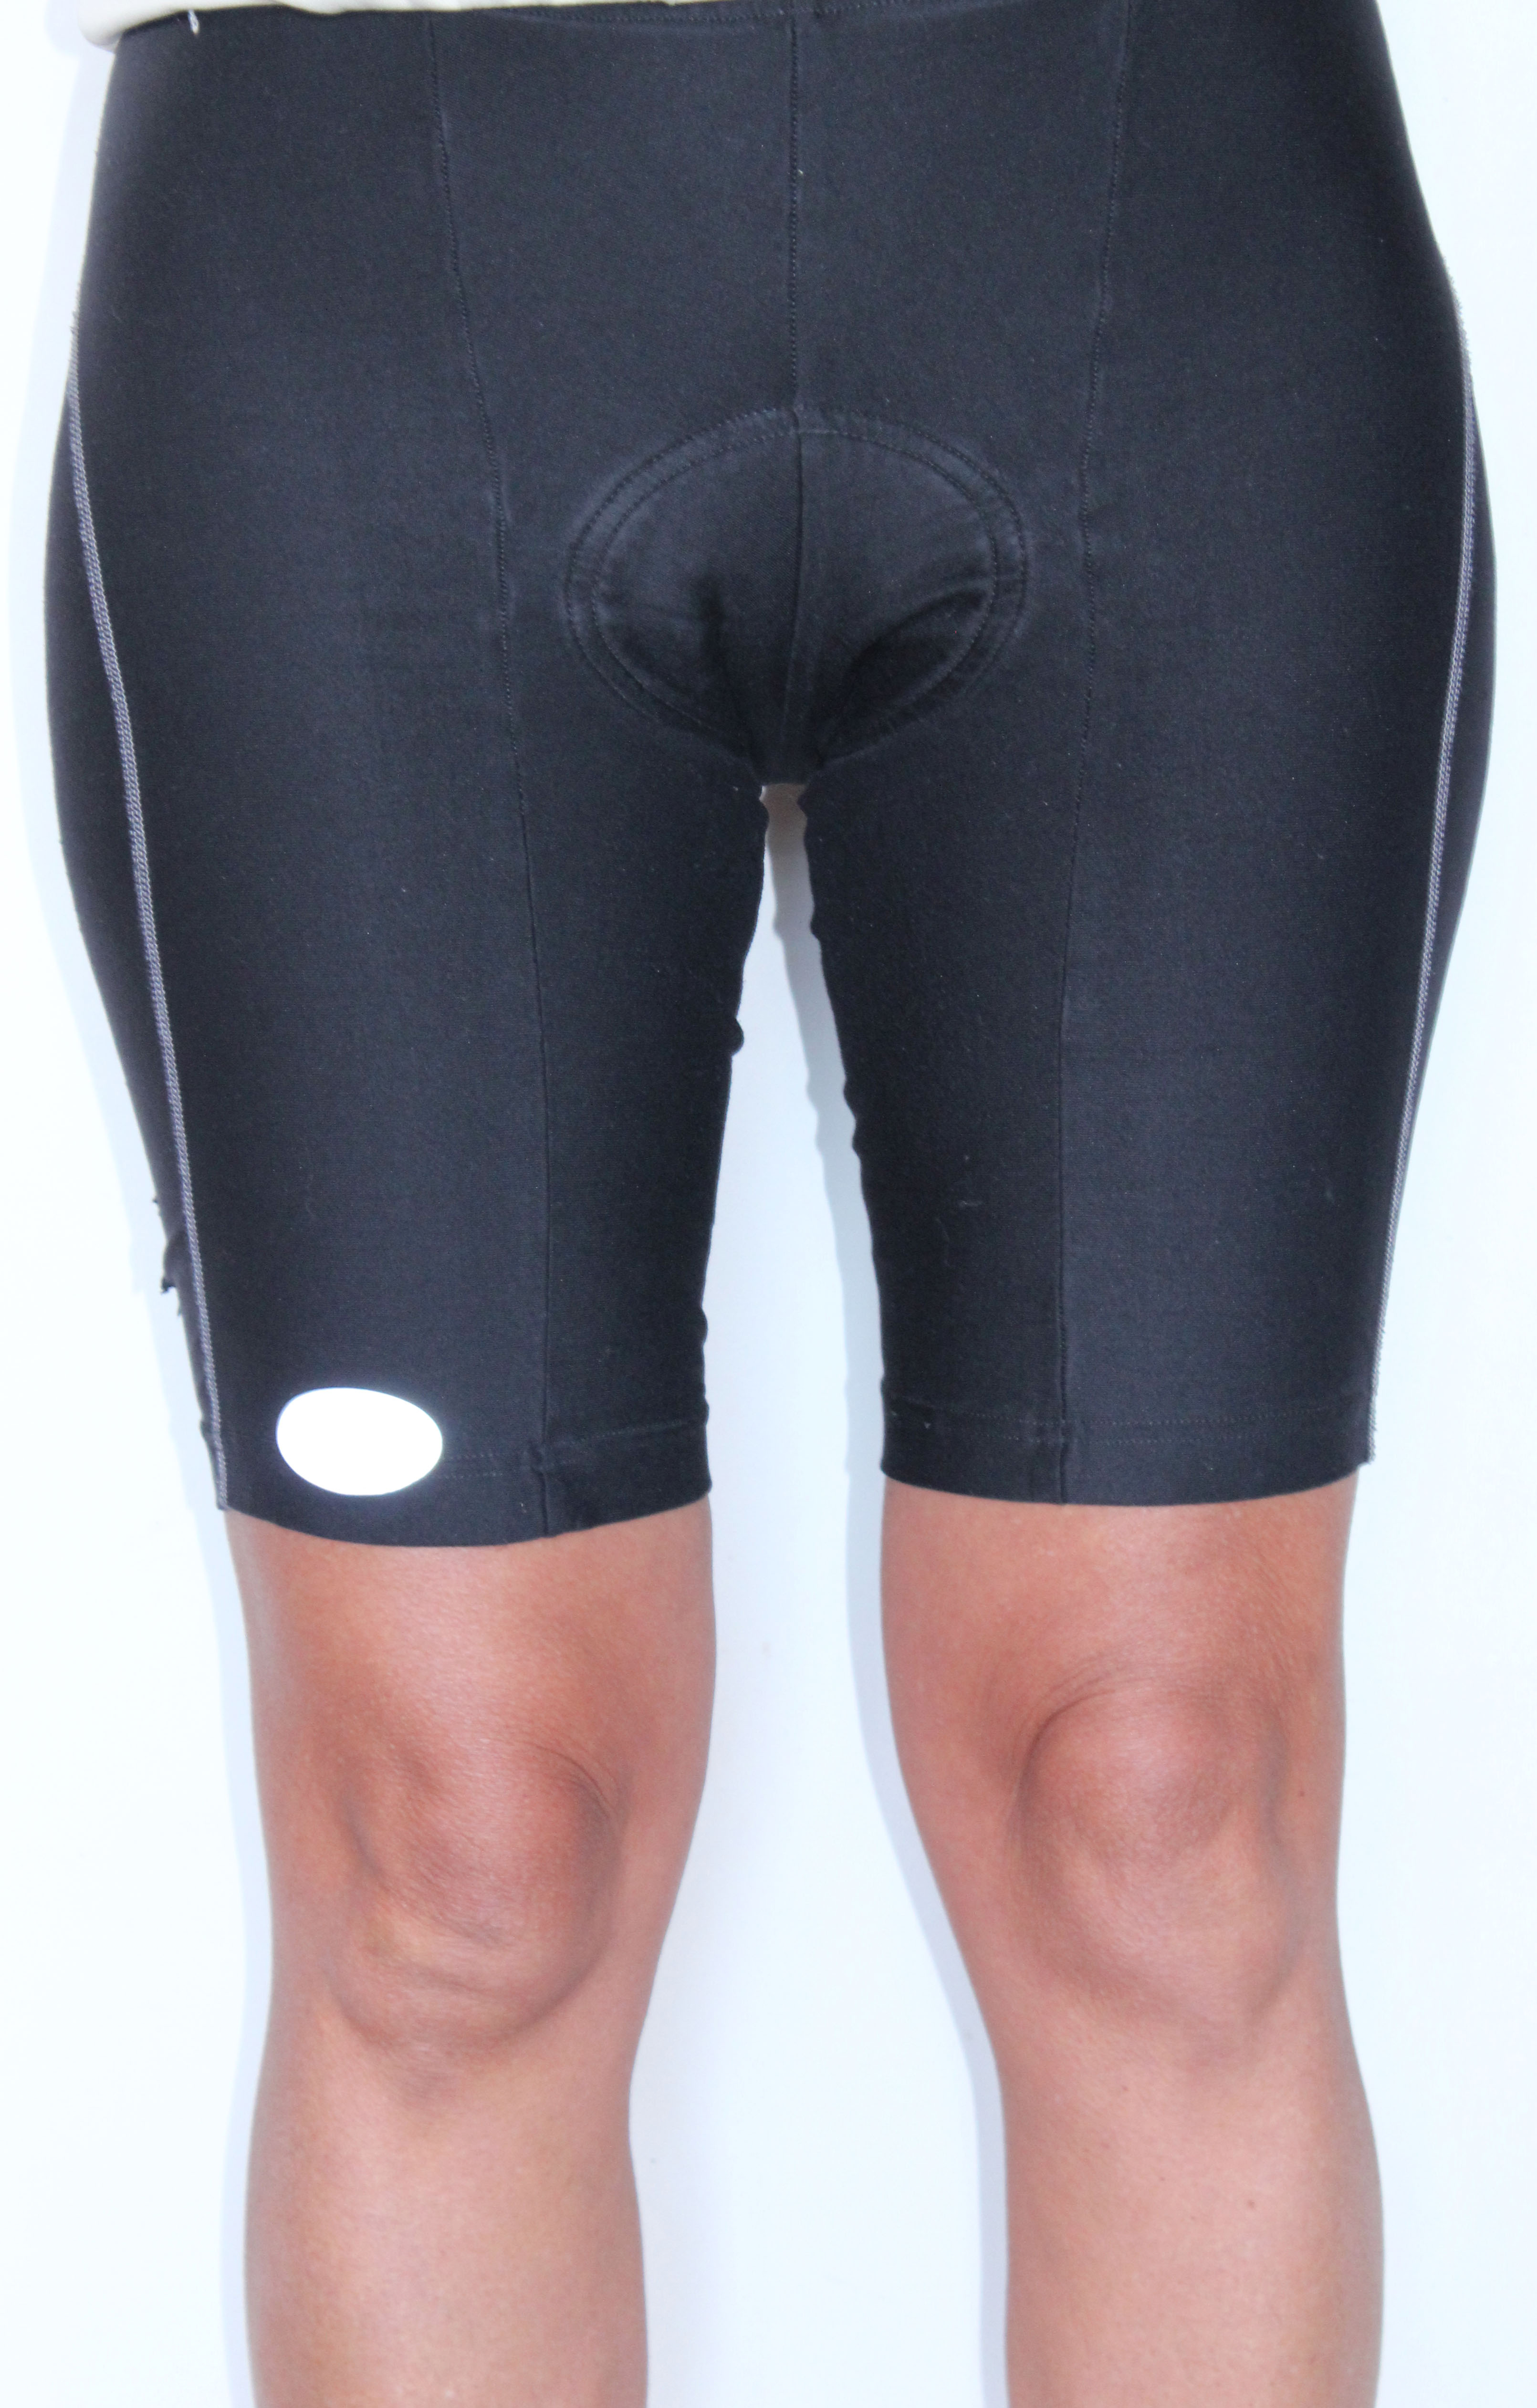 Fancy Pants Why Wear Padded Riding Shorts Goride